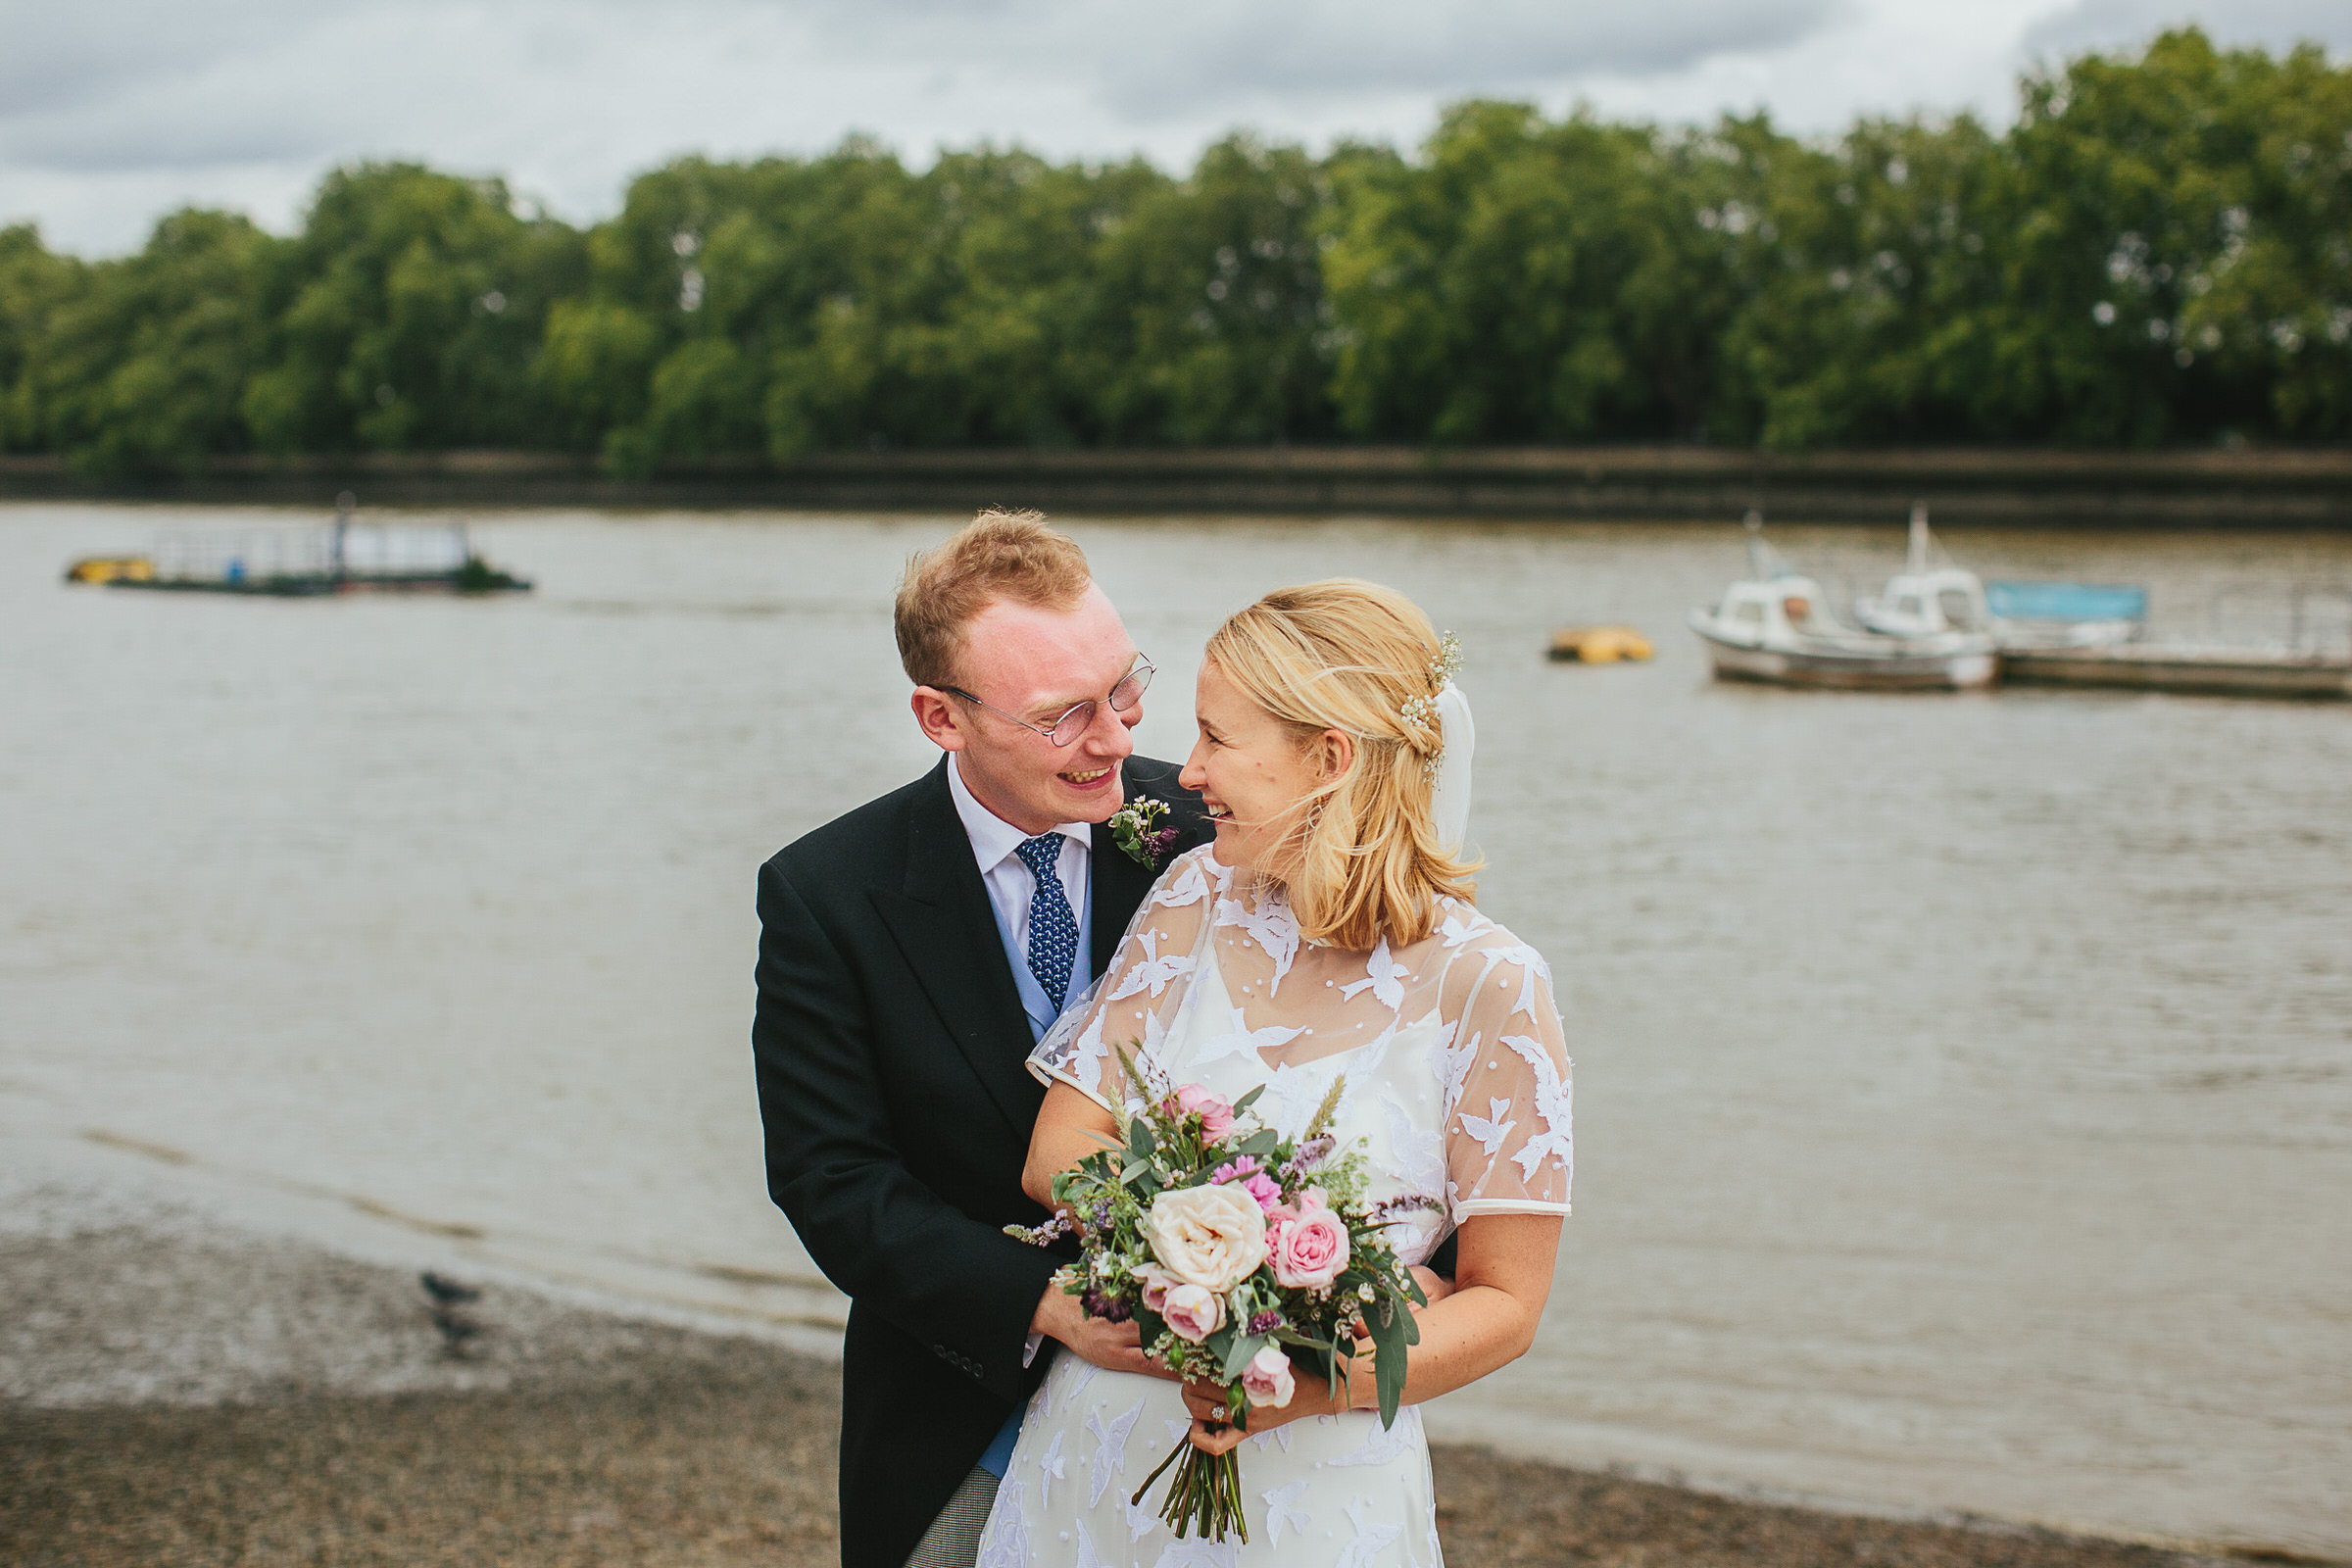 Thames Rowing Club - Harriet & James